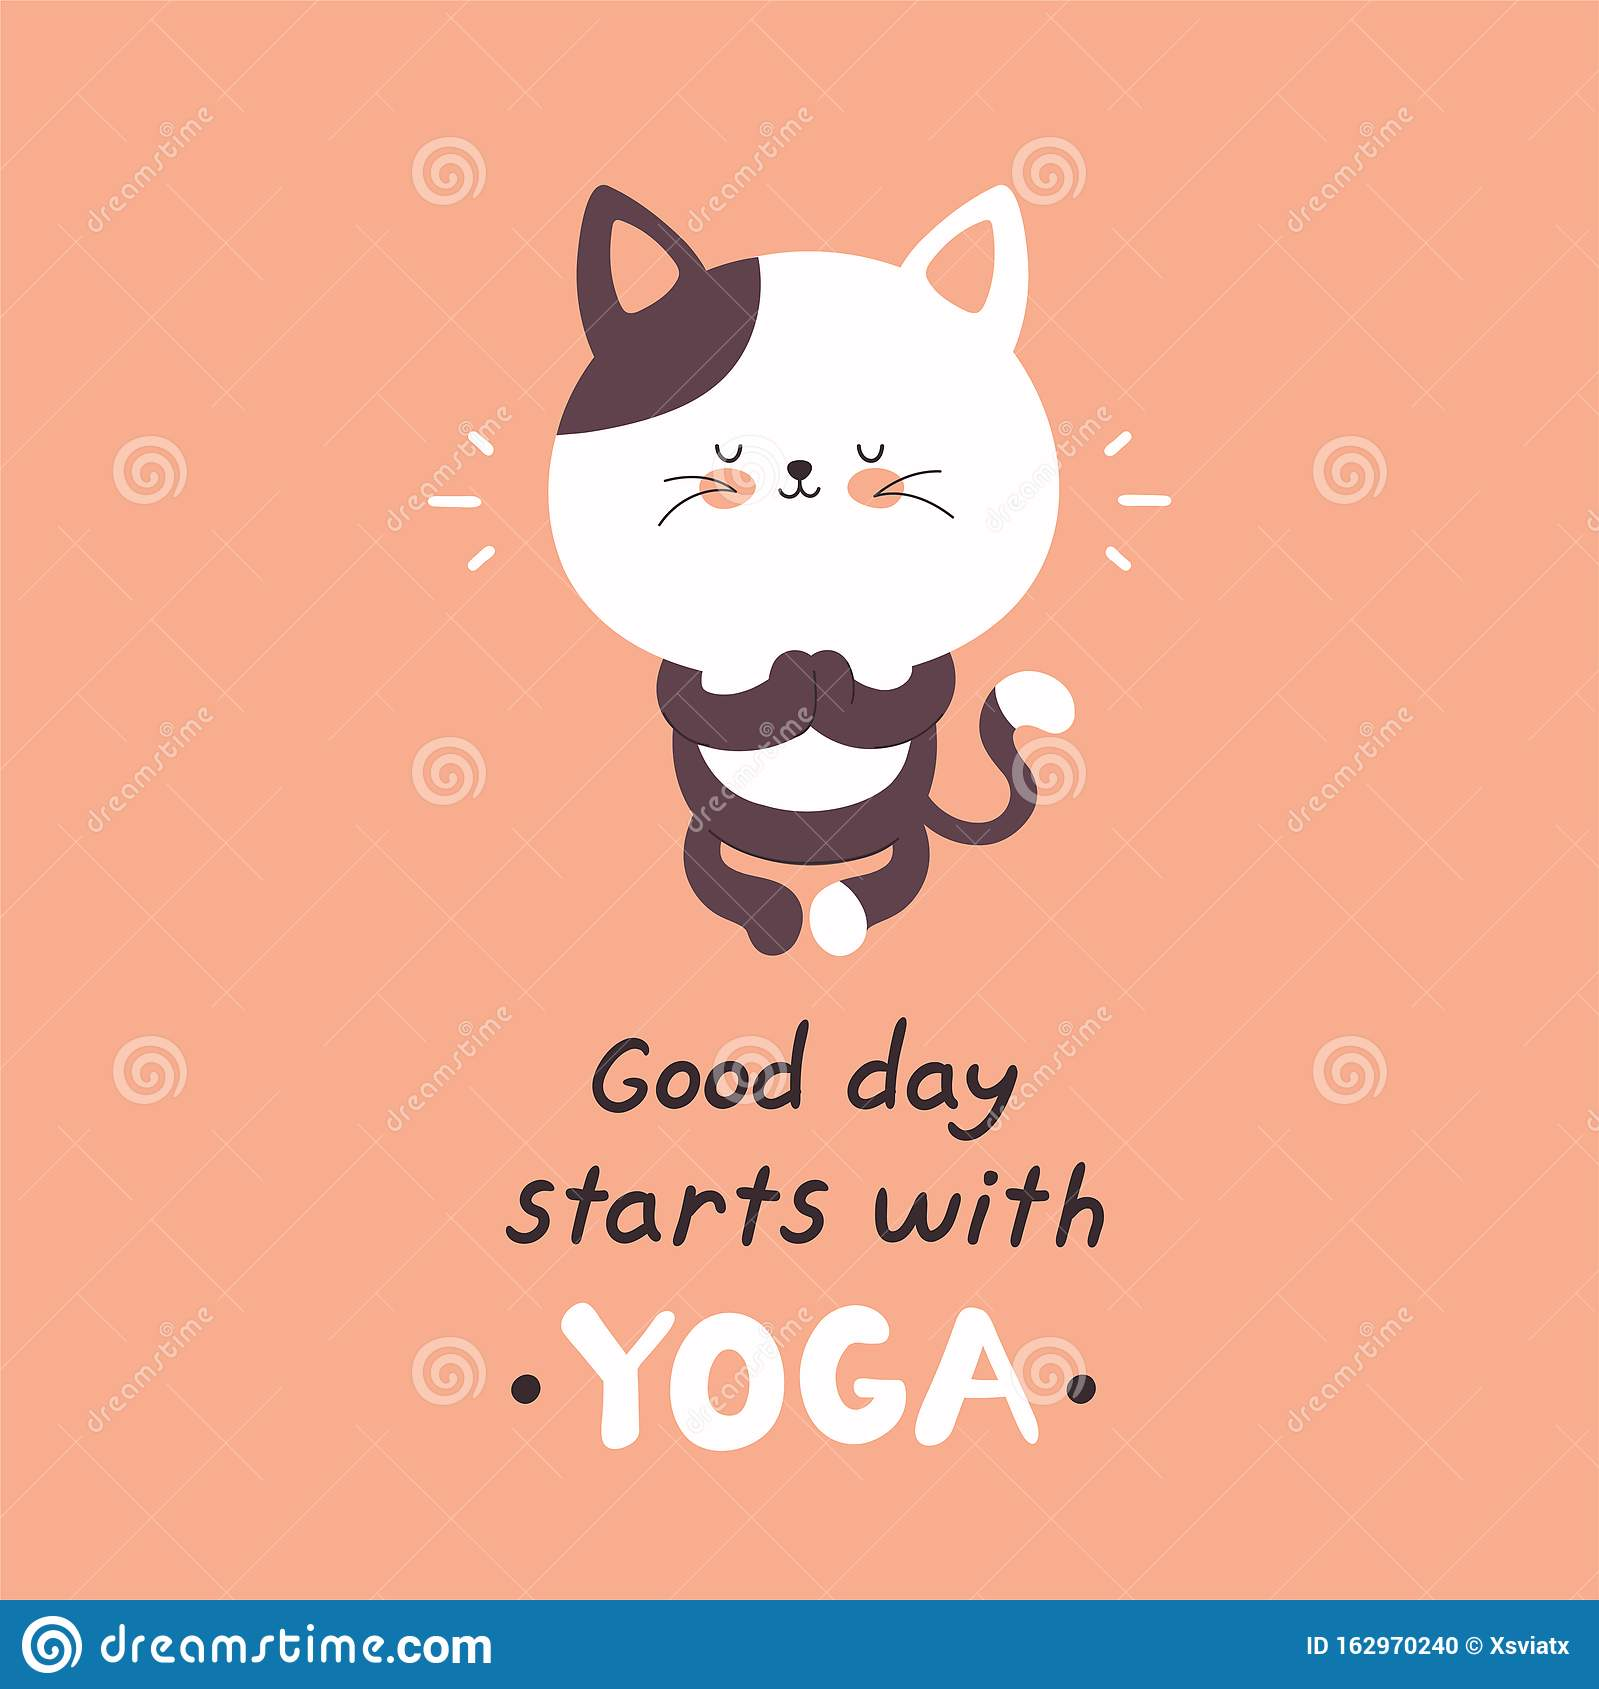 Cute Happy Cat Meditate In Yoga Stock Vector Illustration Of Doodle Meditation 162970240